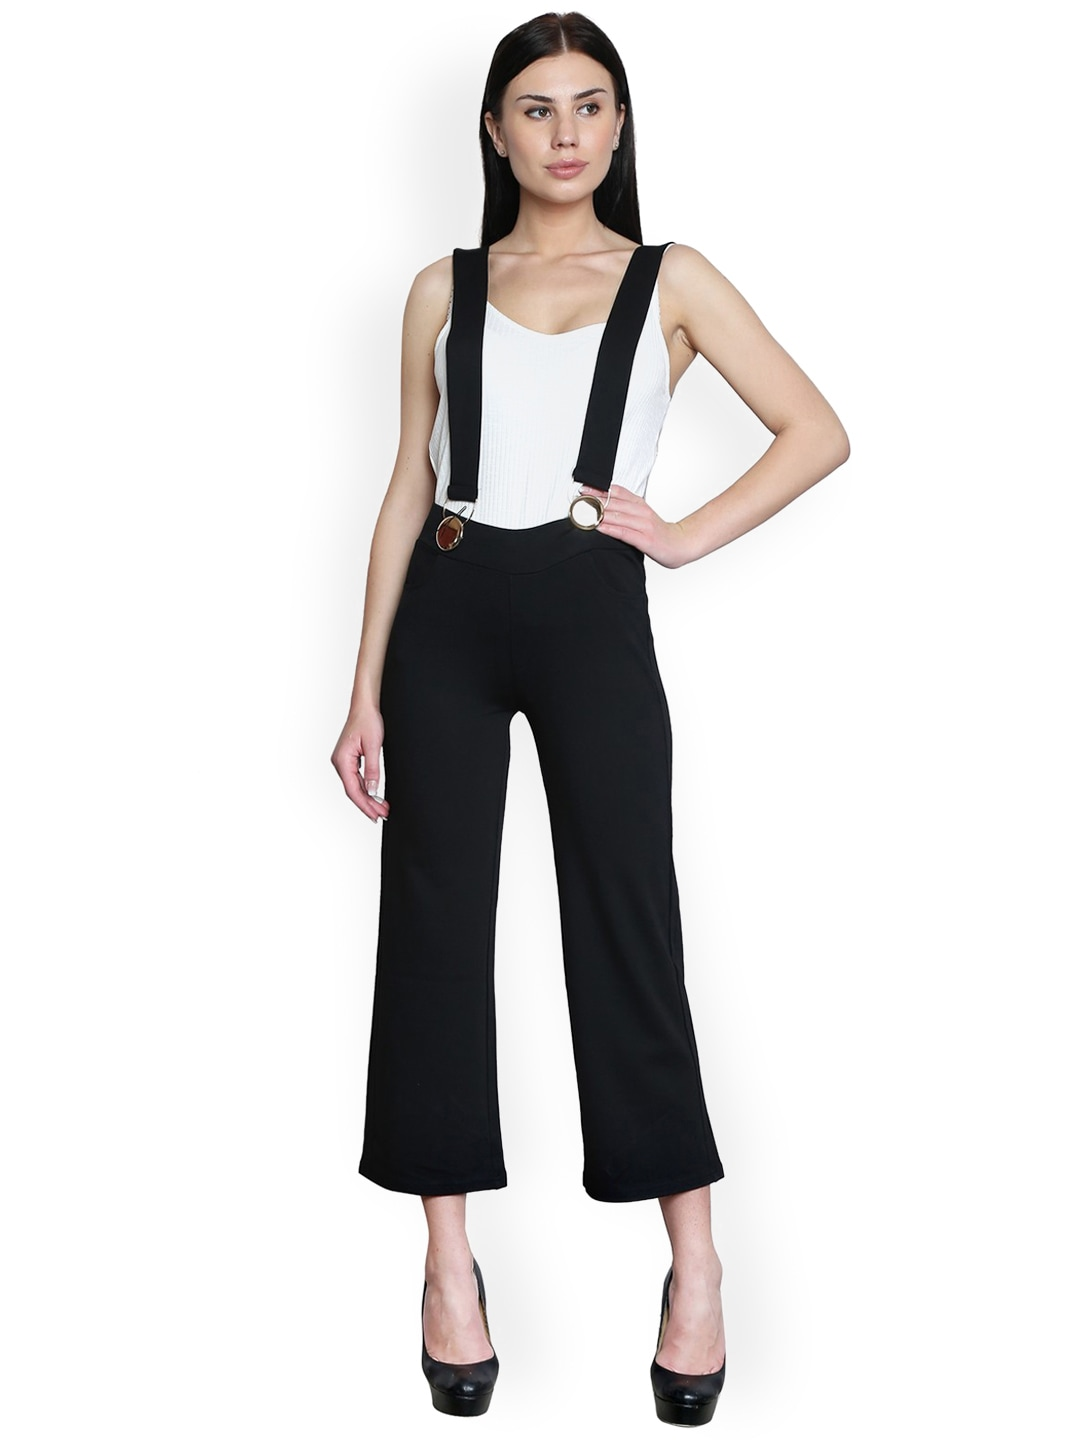 48b141ea2 Dungarees - Buy Dungarees Dress for Women Online - Myntra